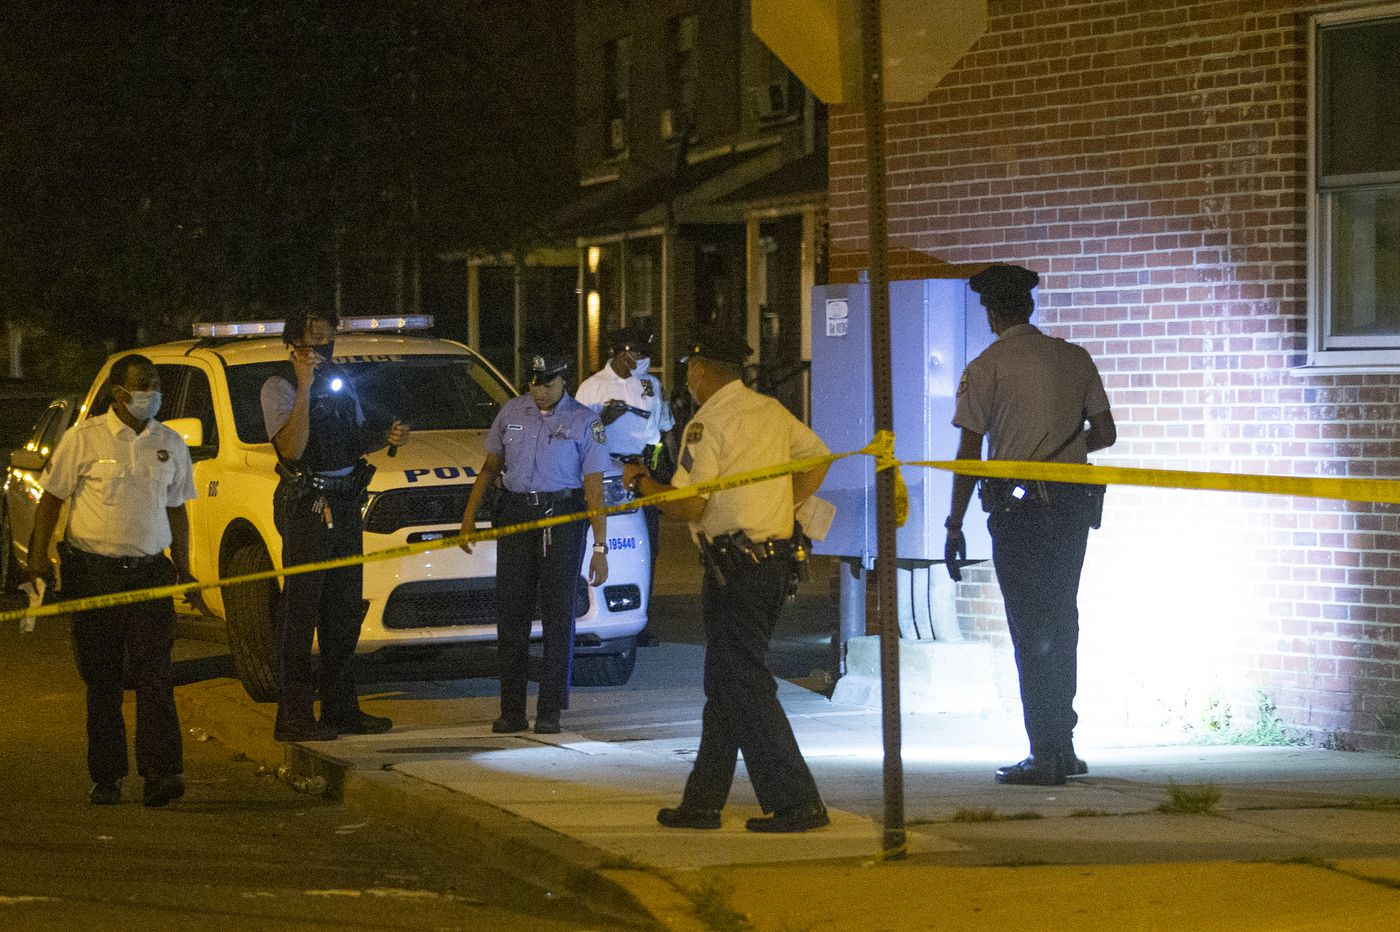 Philly again tops 20 shooting victims in another weekend of gun violence